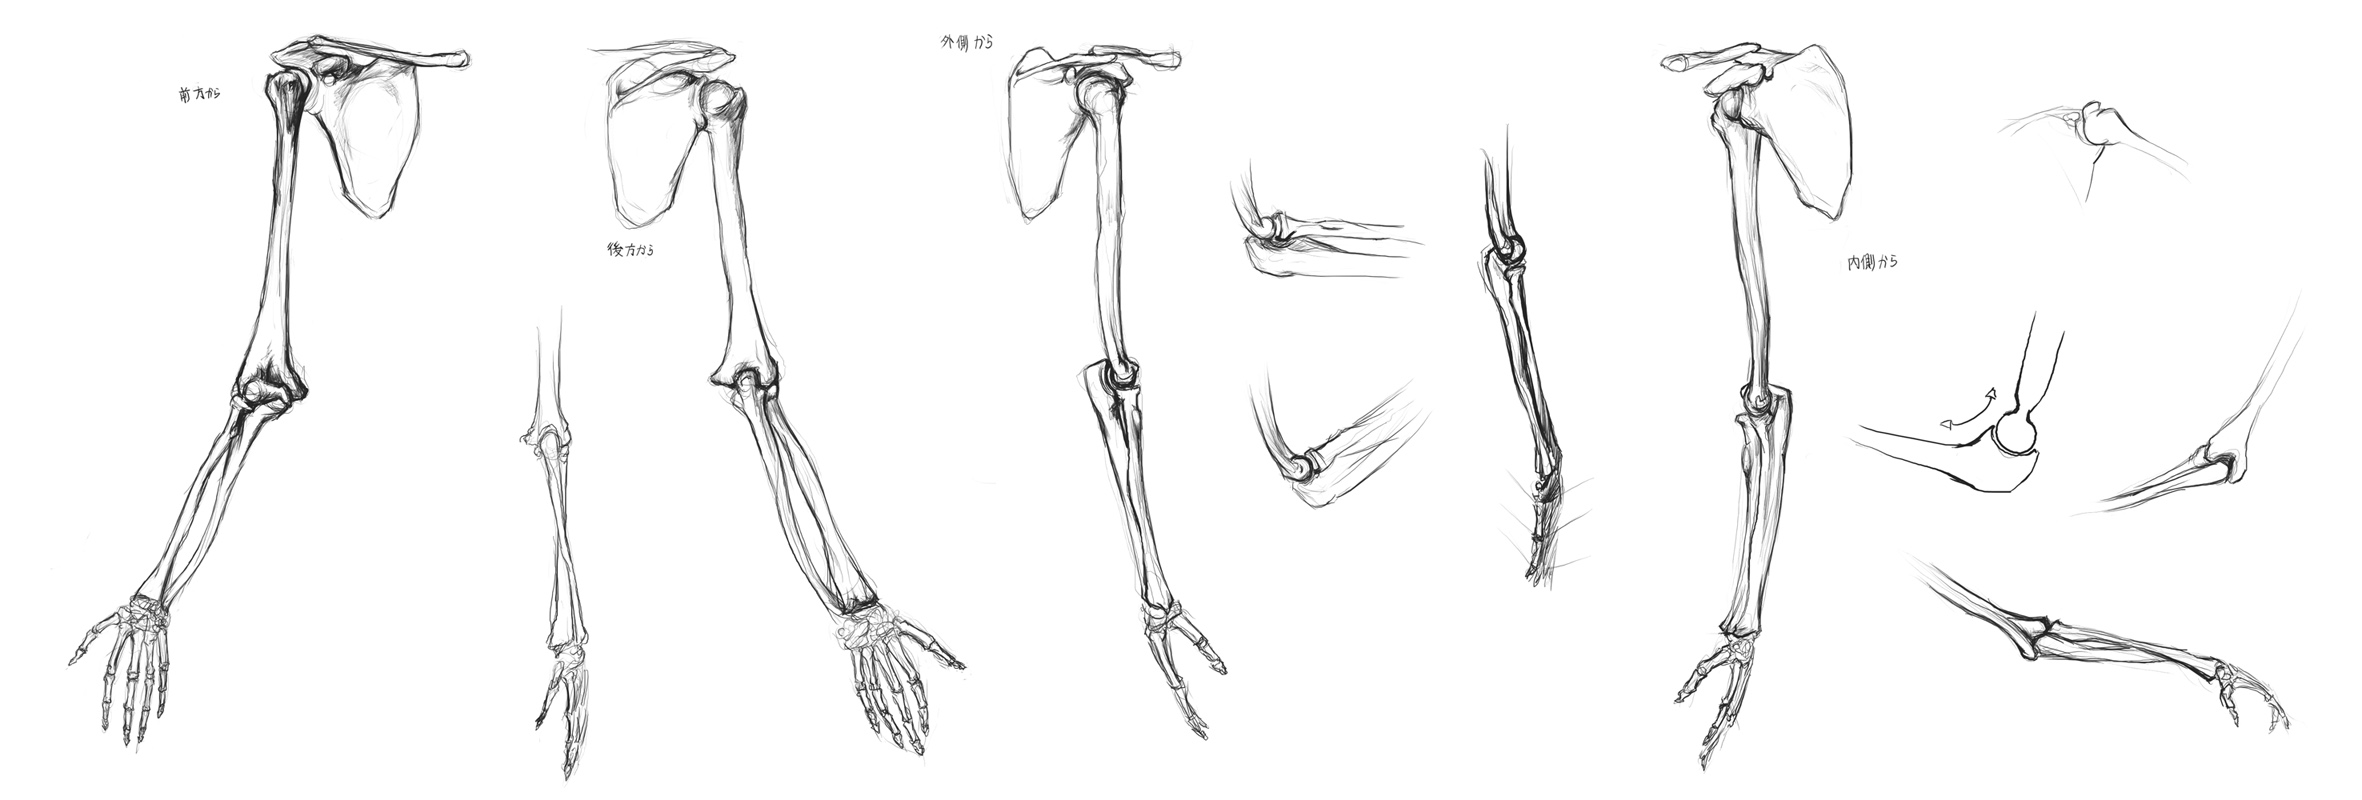 human anatomy arm bones. human anatomy arm bones. - [anatomy.ch-u], Human Body